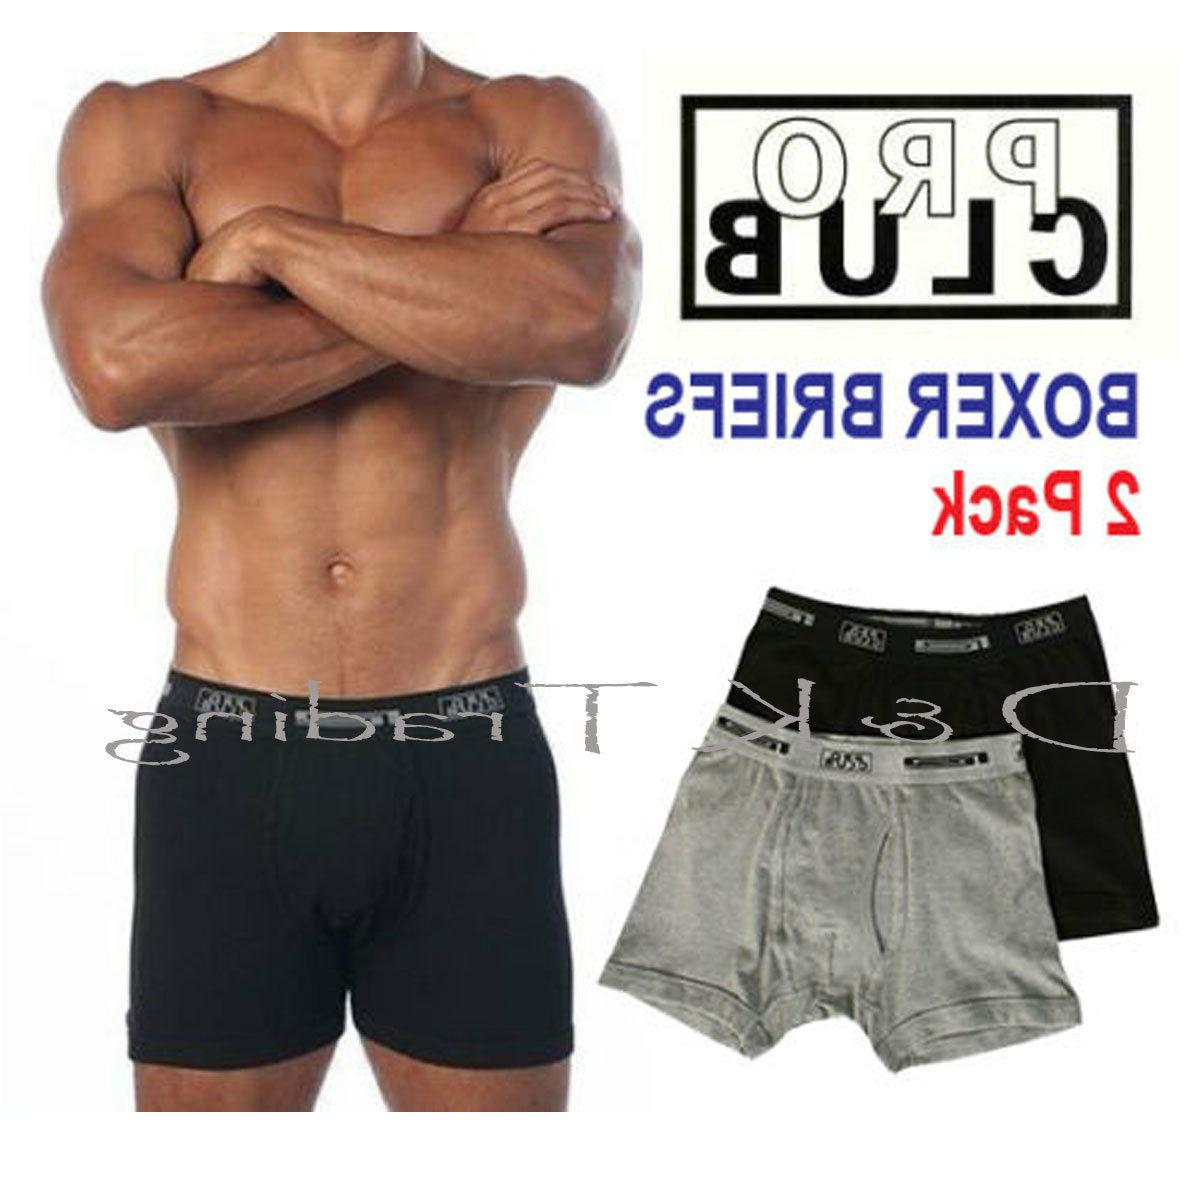 2 pack boxer briefs cotton proclub men